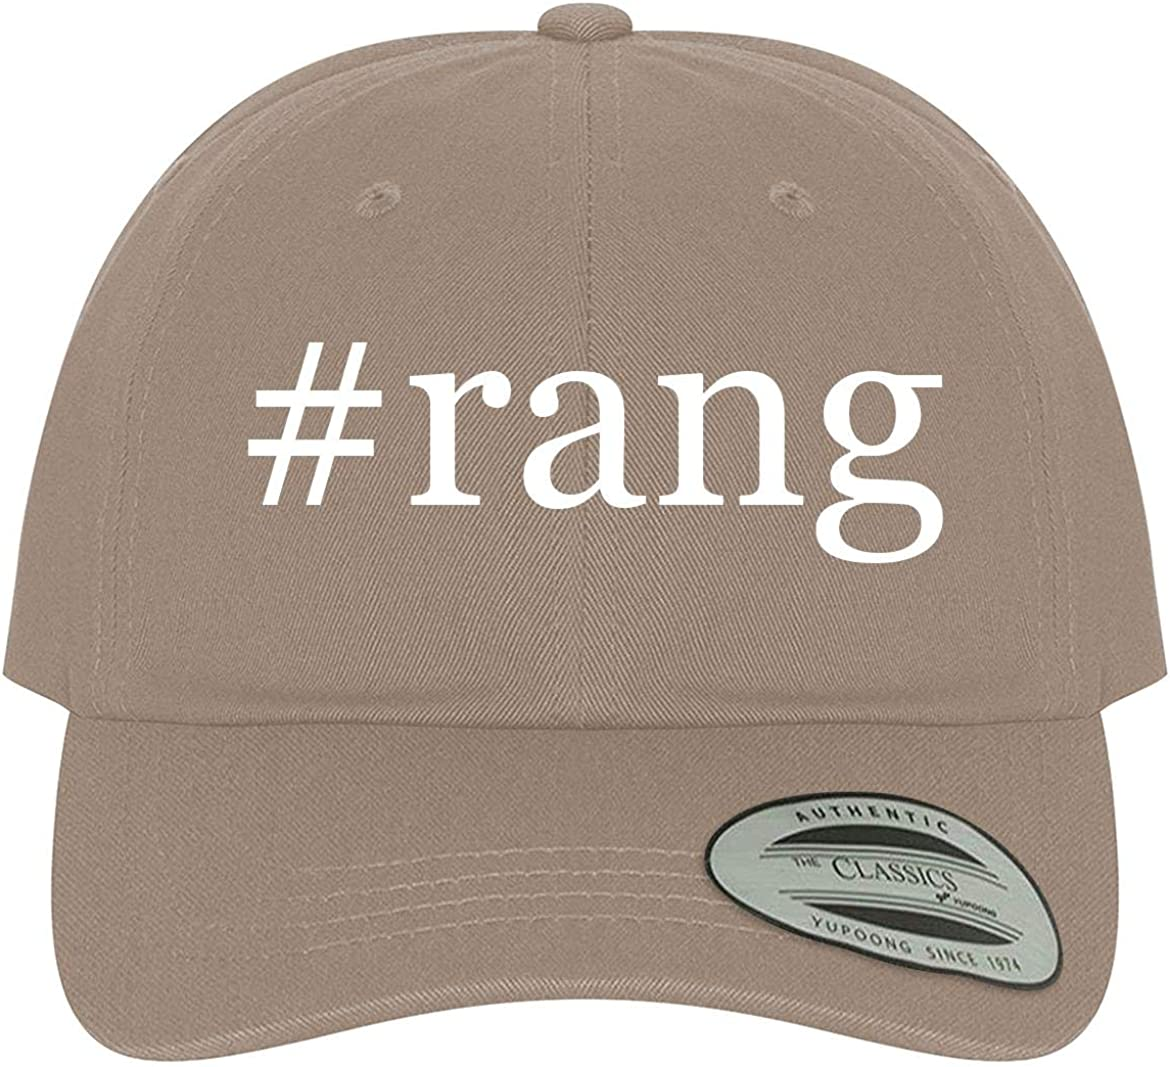 The Town Butler #rang - A Comfortable Adjustable Hashtag Dad Baseball Hat